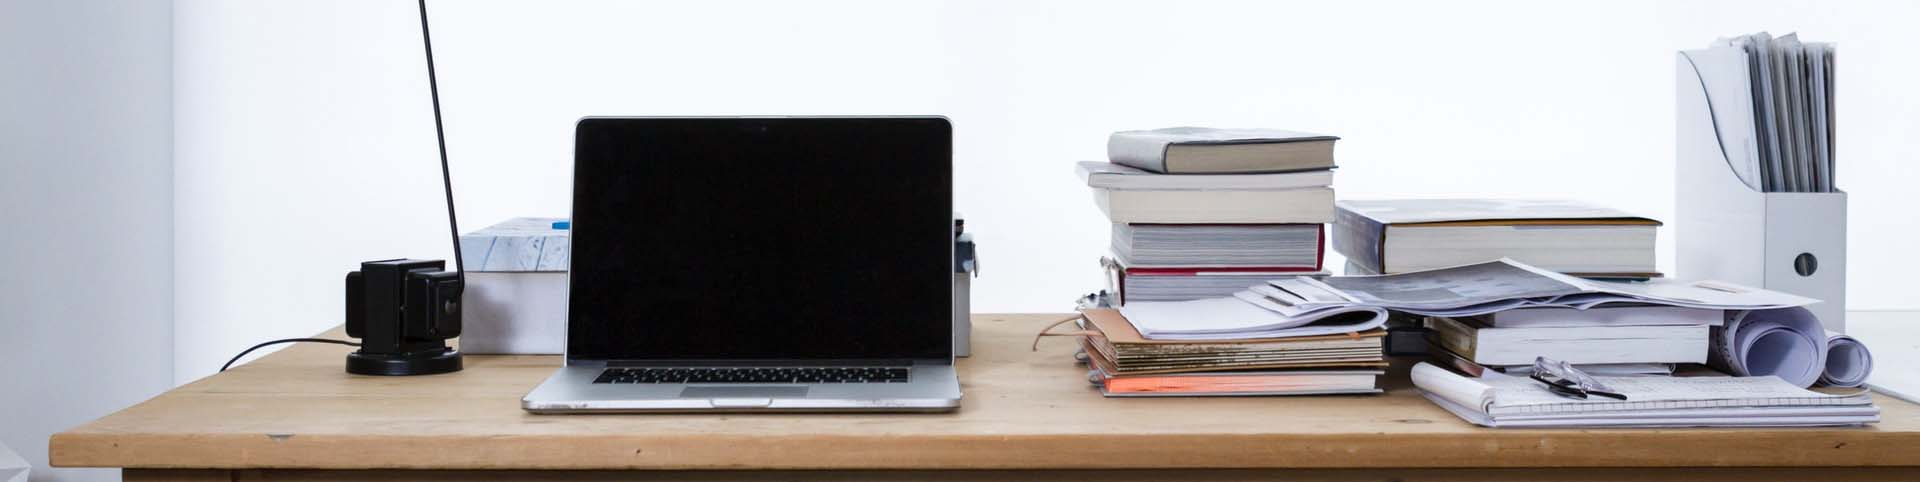 bg-desktop-view-with-books-papers-and-laptop